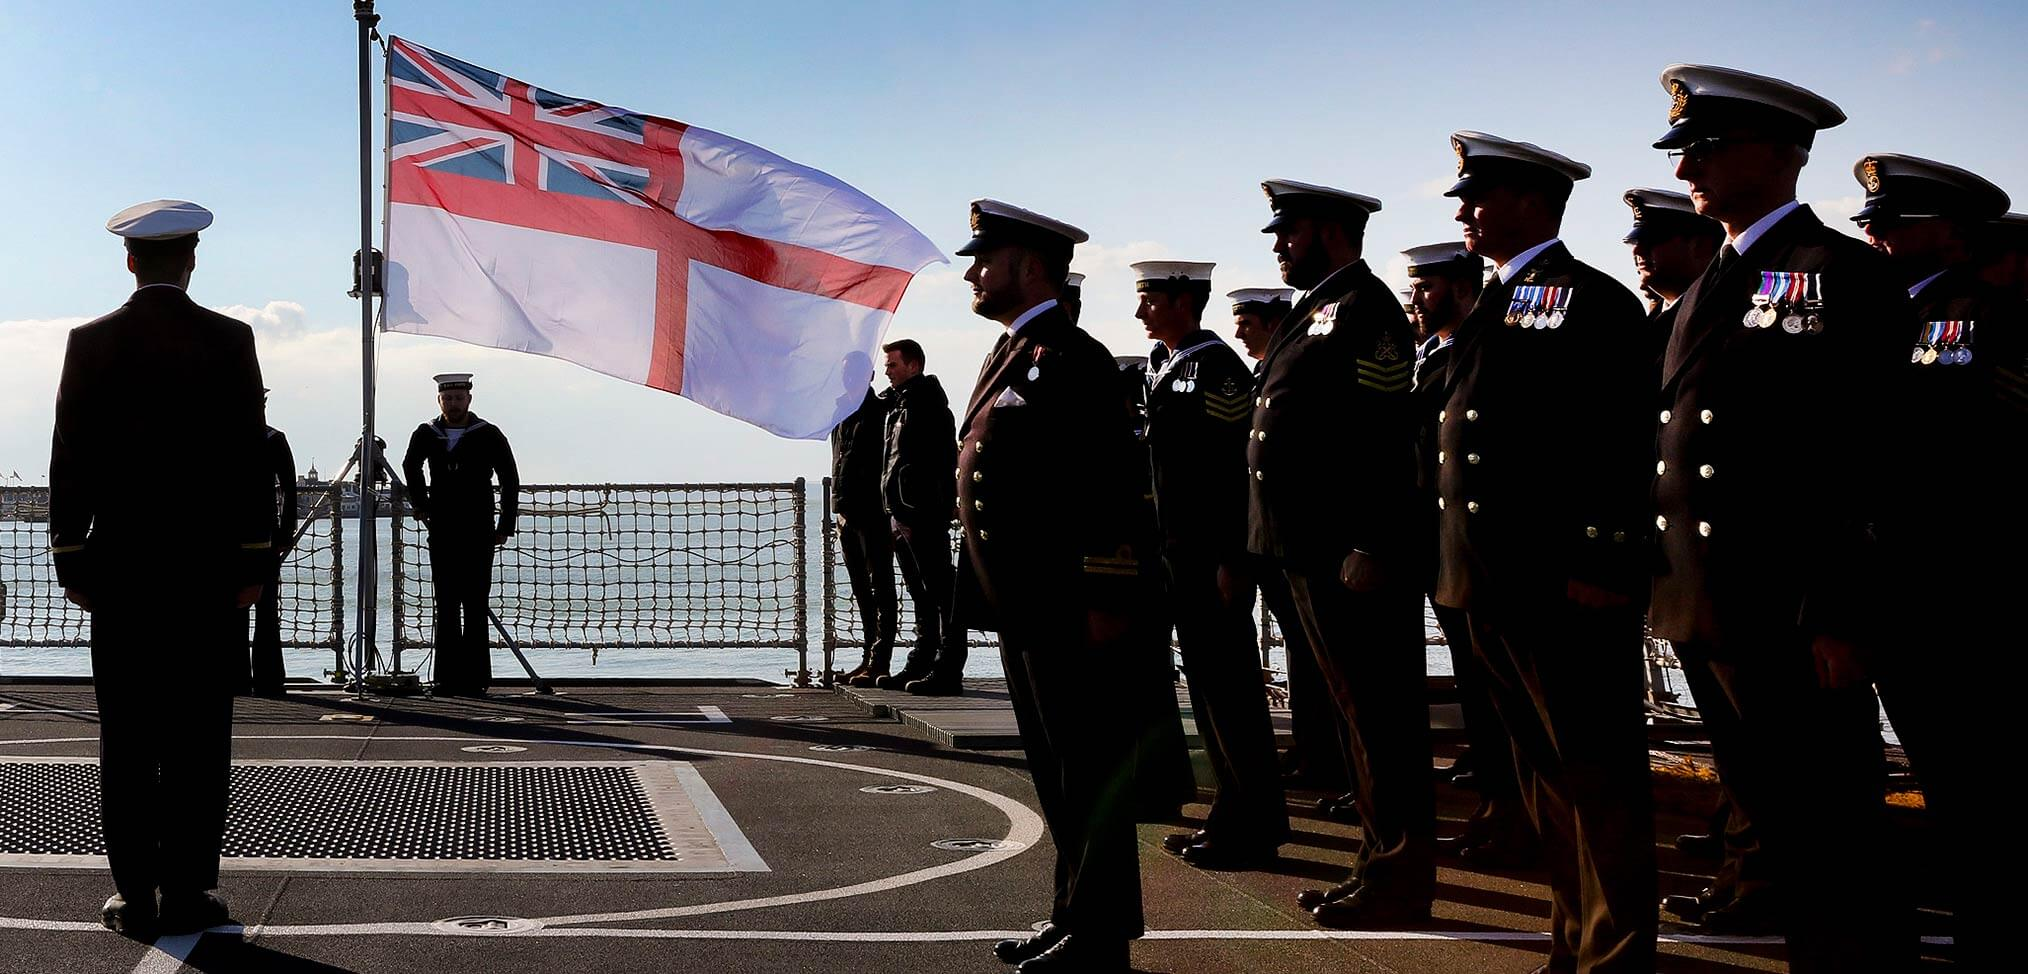 Royal Navy sailors commissioning ceremony White Ensign